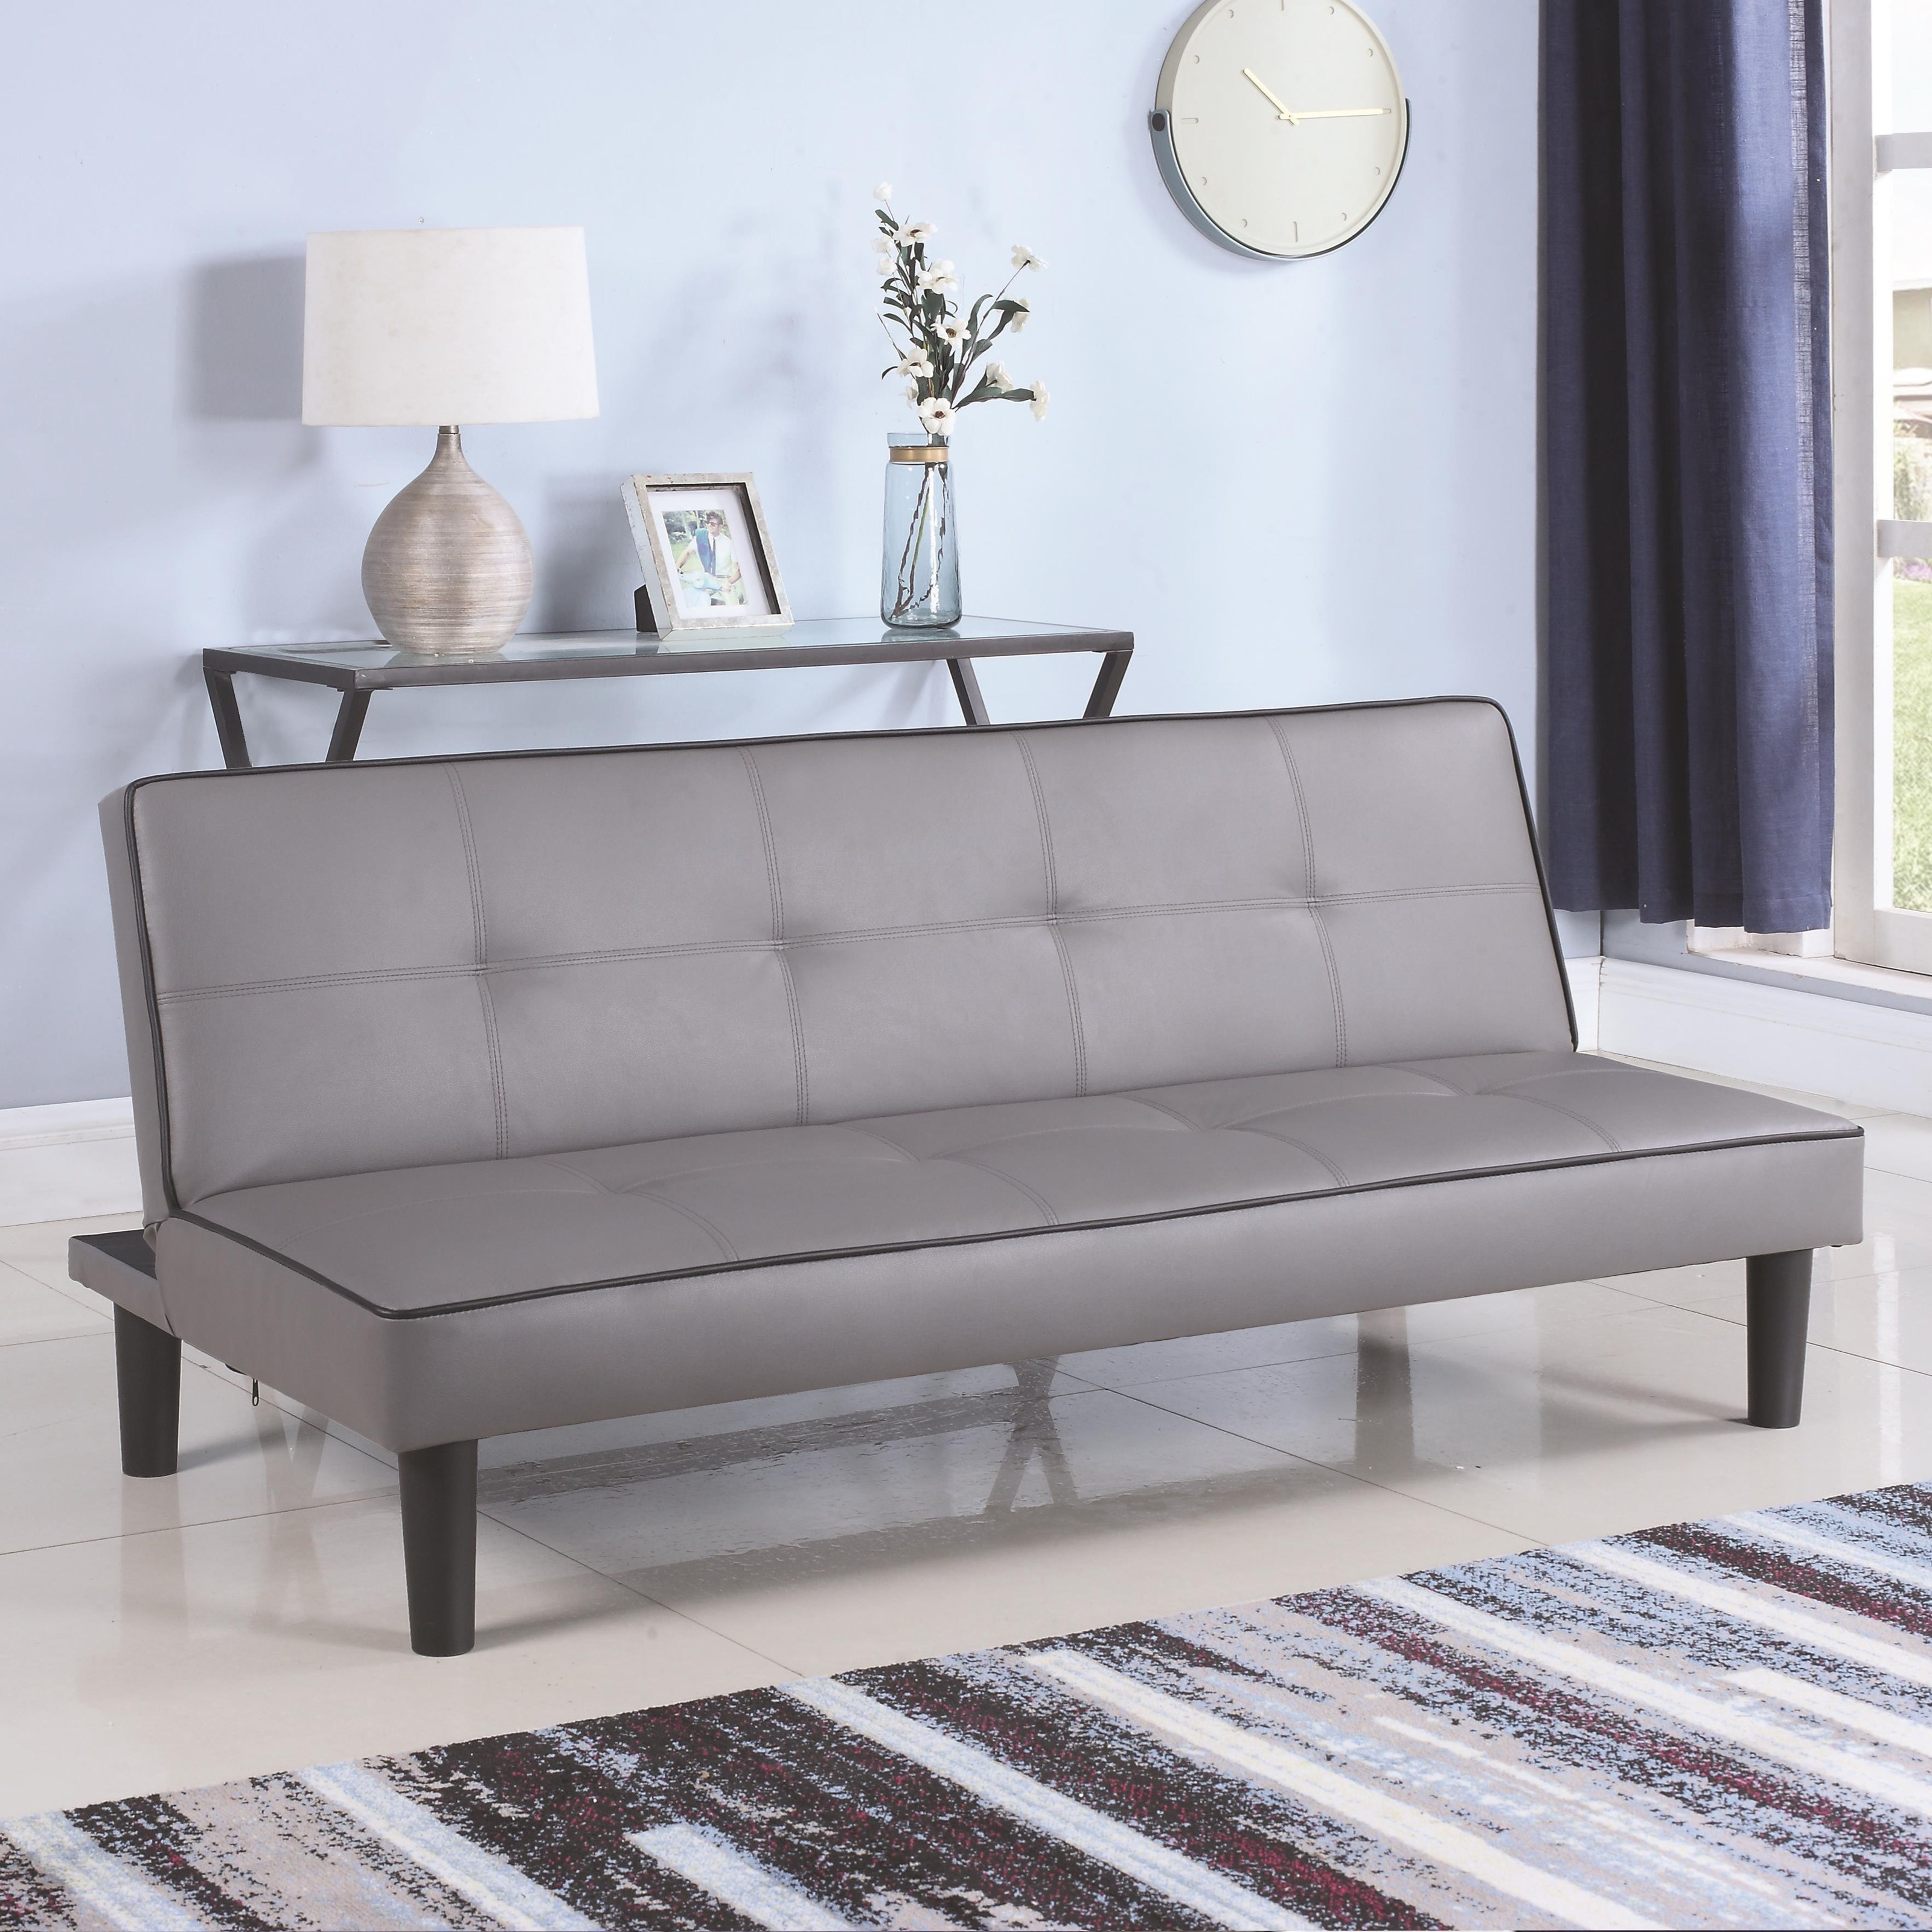 coaster futon beds transitional value and products futons number bed sofa item velvet